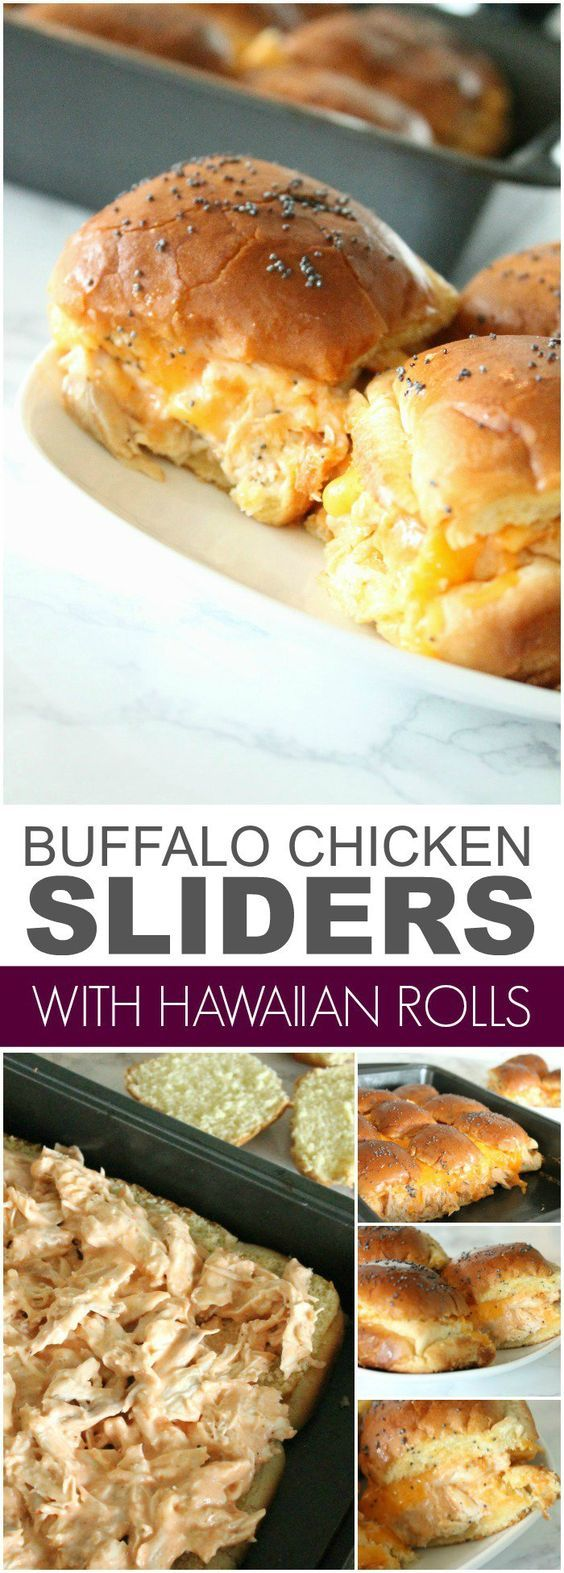 Buffalo Chicken Sliders! Easy Snack or Appetizer Recipe for a party or for the Super Bowl! Game Day Party Recipes!